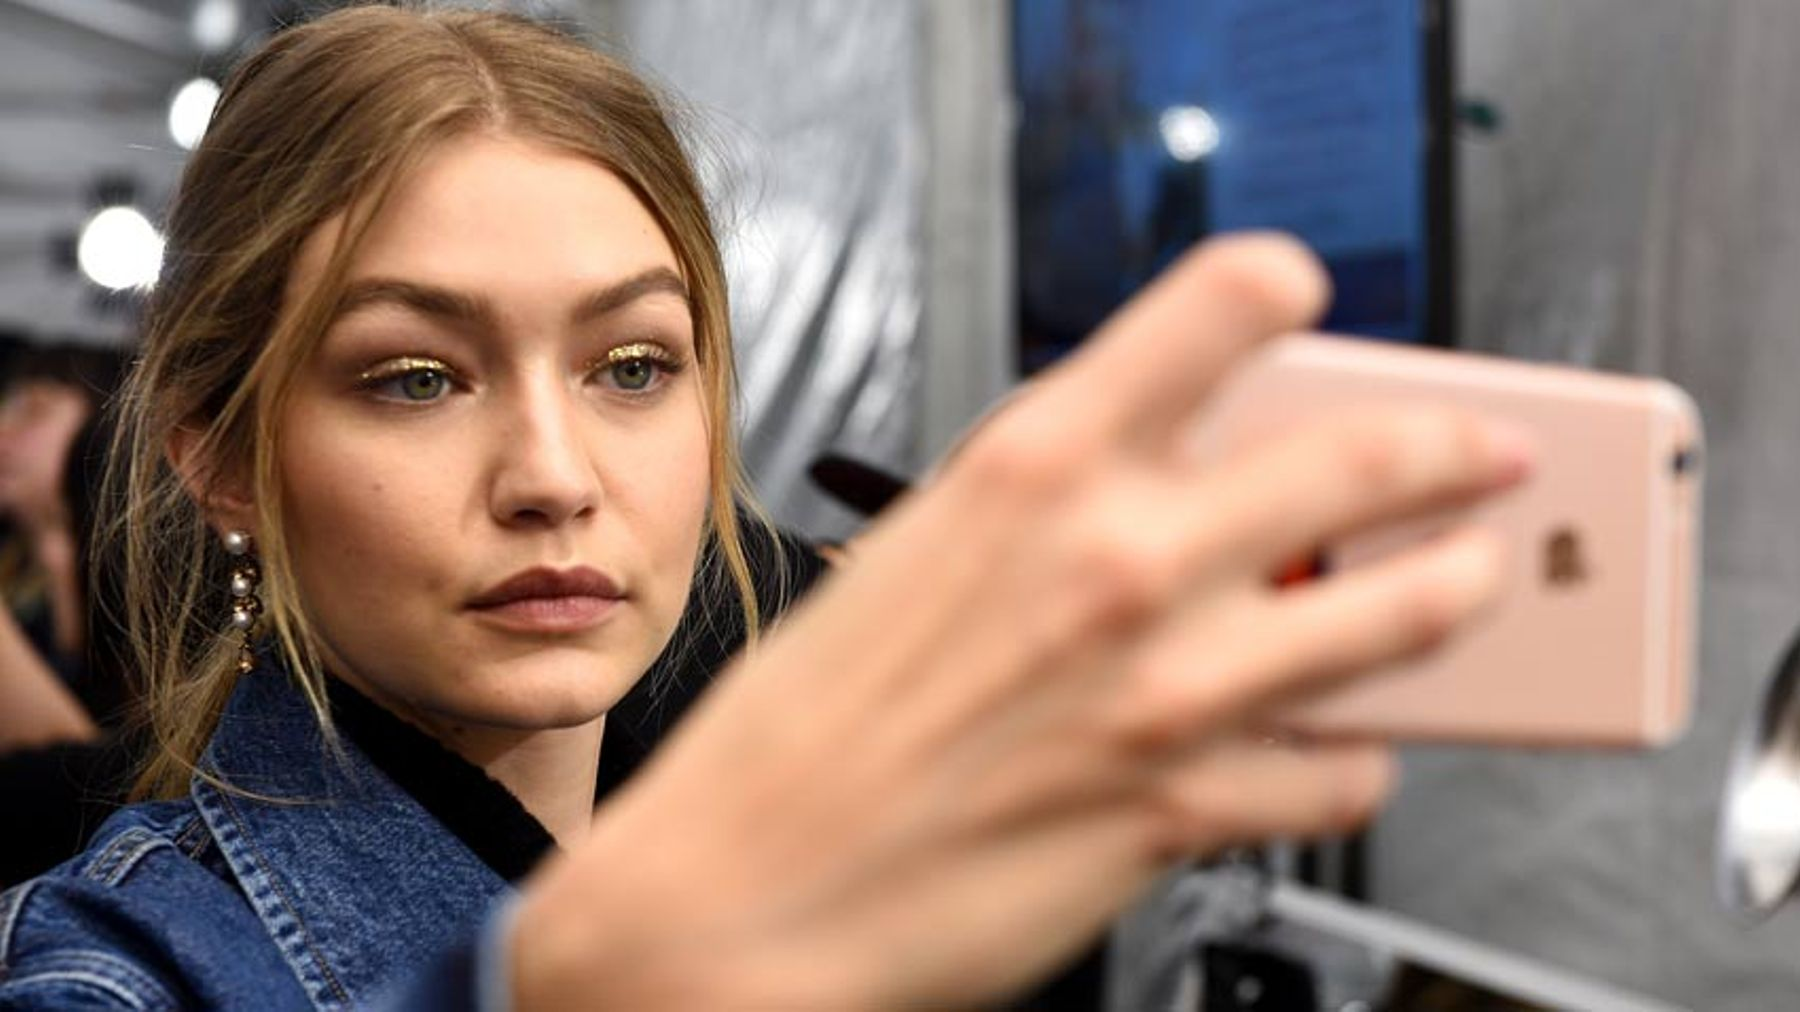 a92b21cf Win The Chance To Meet Gigi Hadid (And Take A Selfie With Her) Thanks To Tommy  Hilfiger